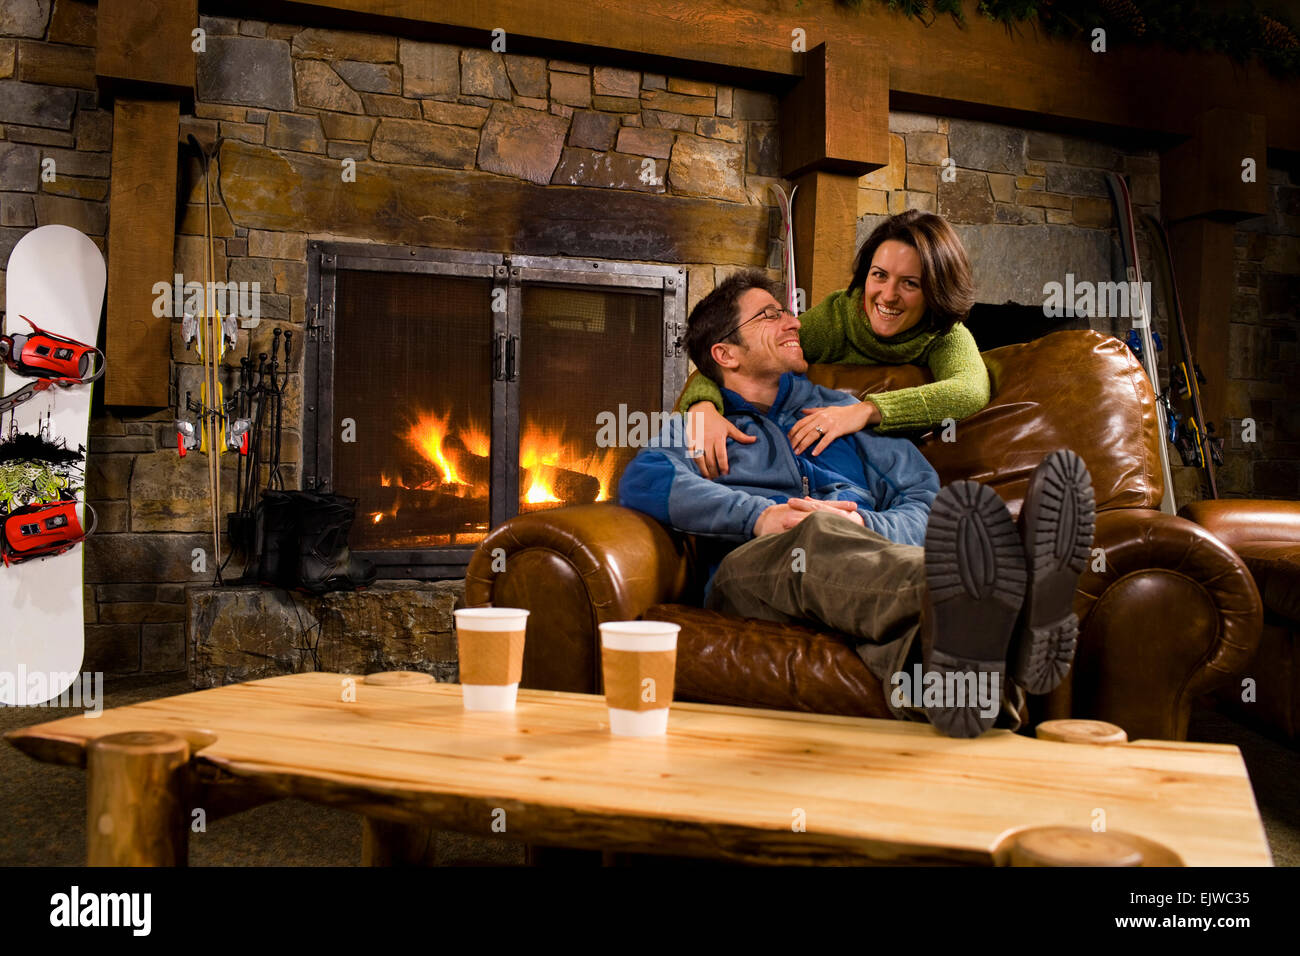 USA, Montana, Whitefish, Man and woman hanging out in front of fireplace - Stock Image